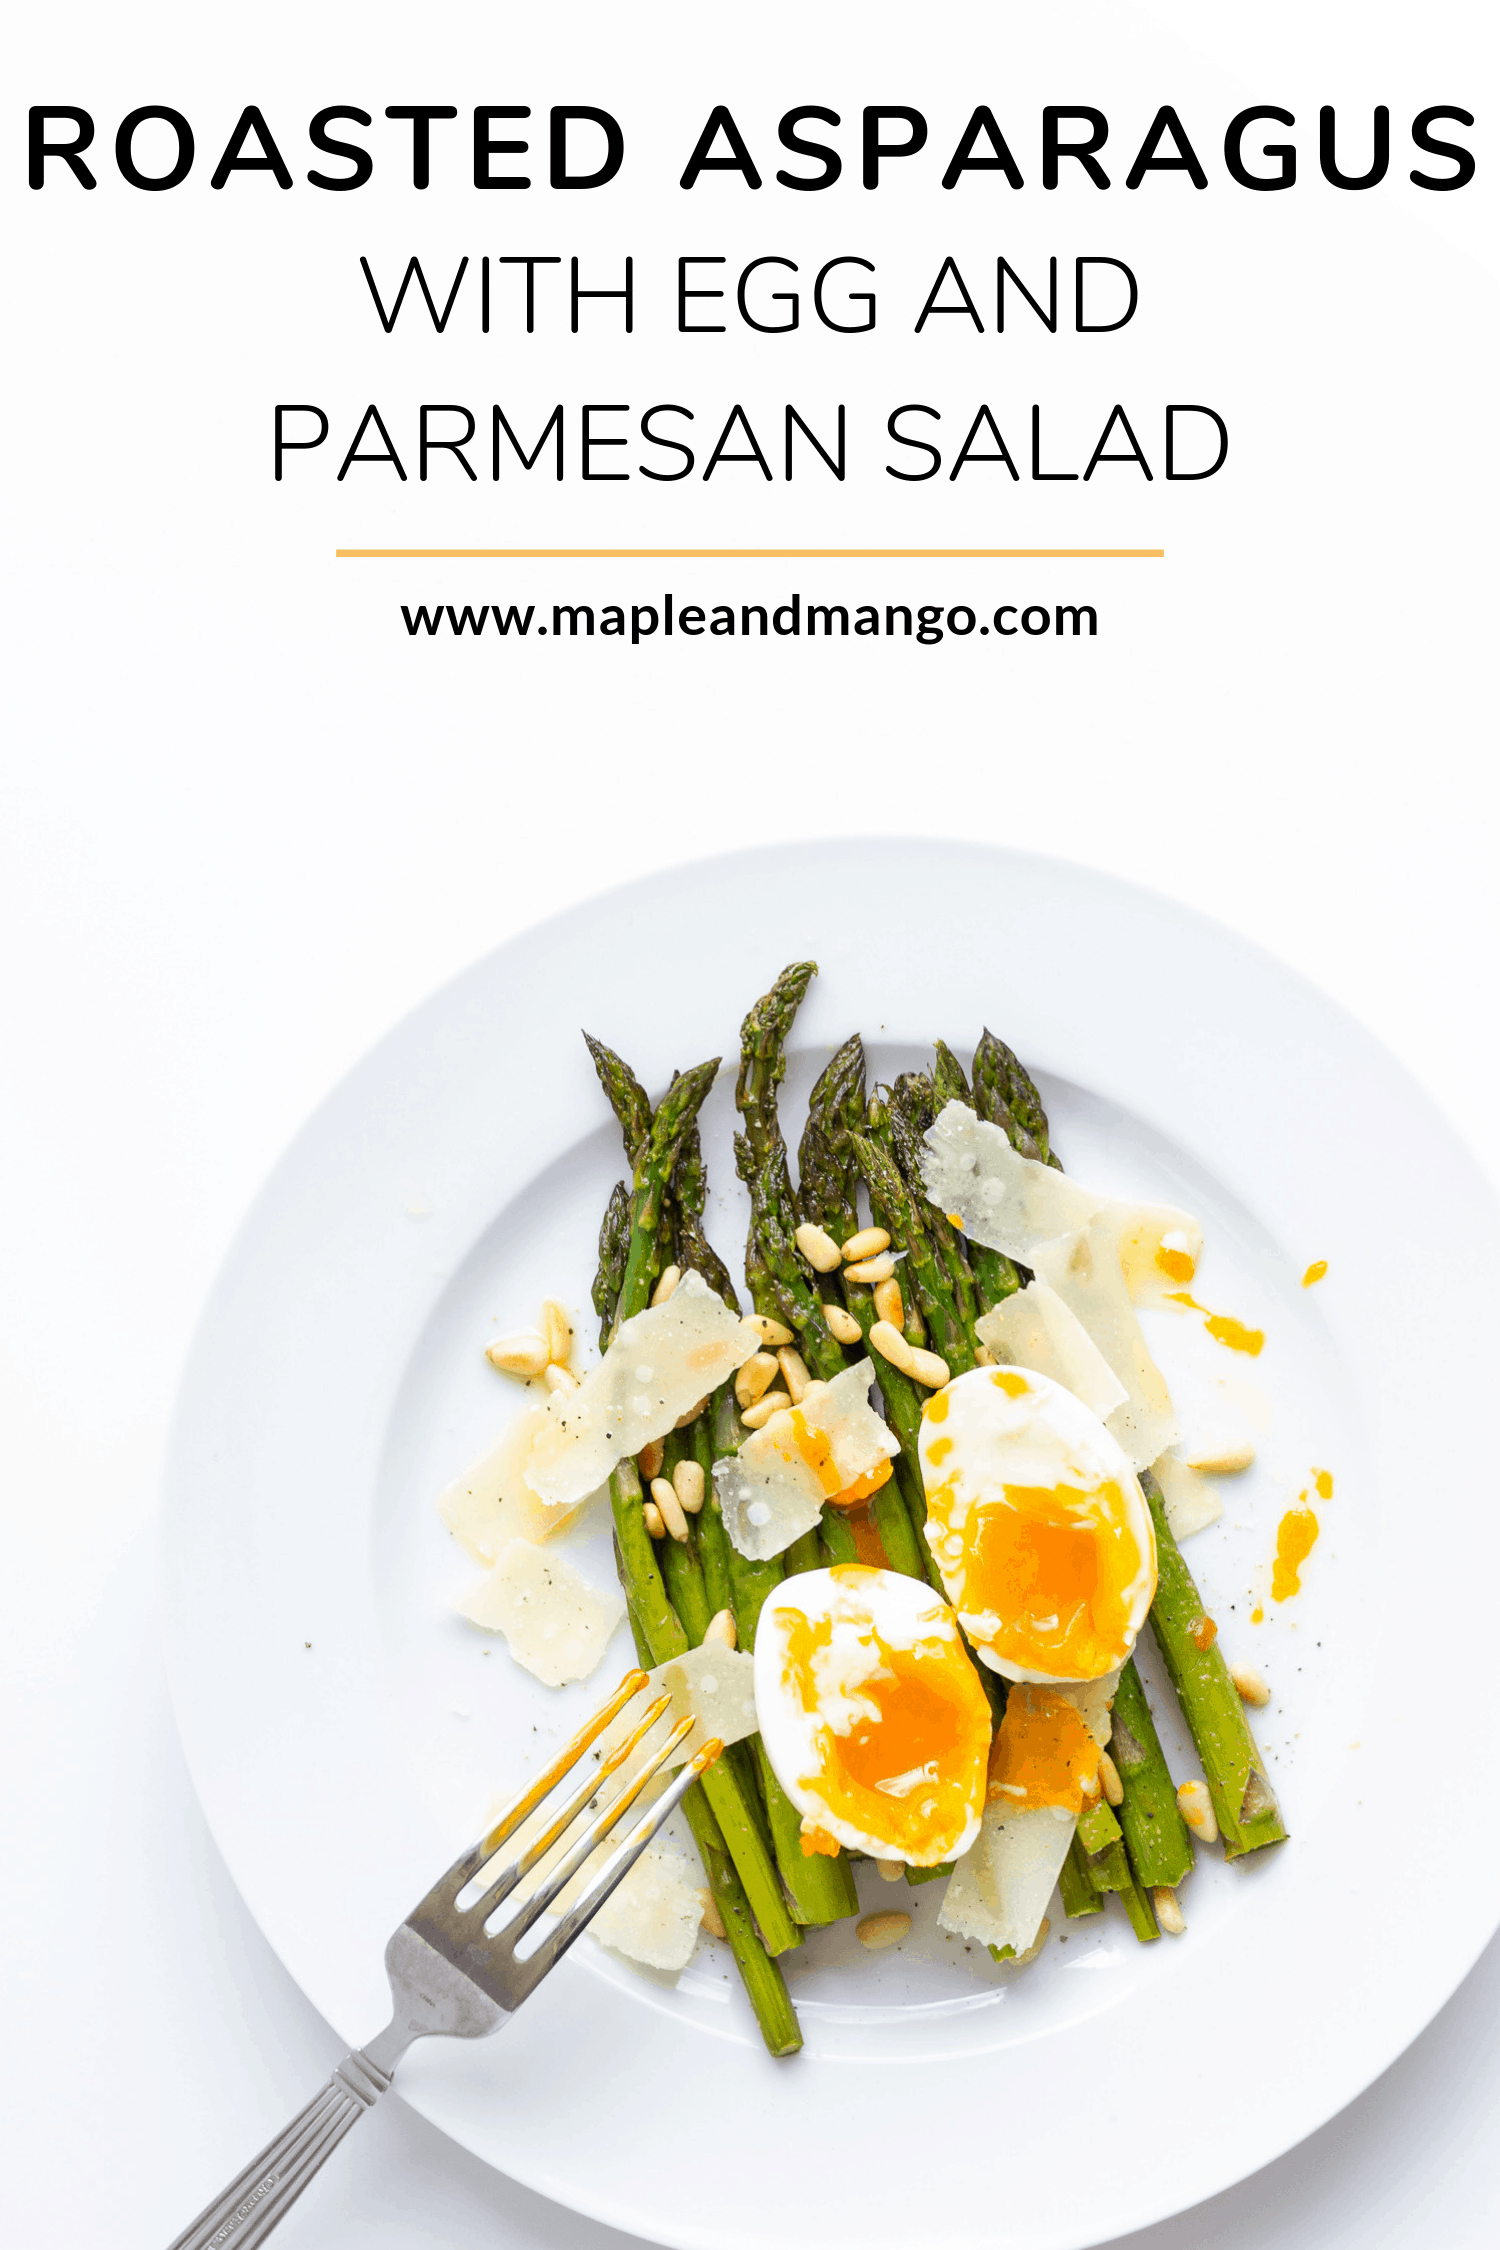 roasted asparagus on a white plate topped with soft boiled egg, parmesan shavings and toasted pine nuts